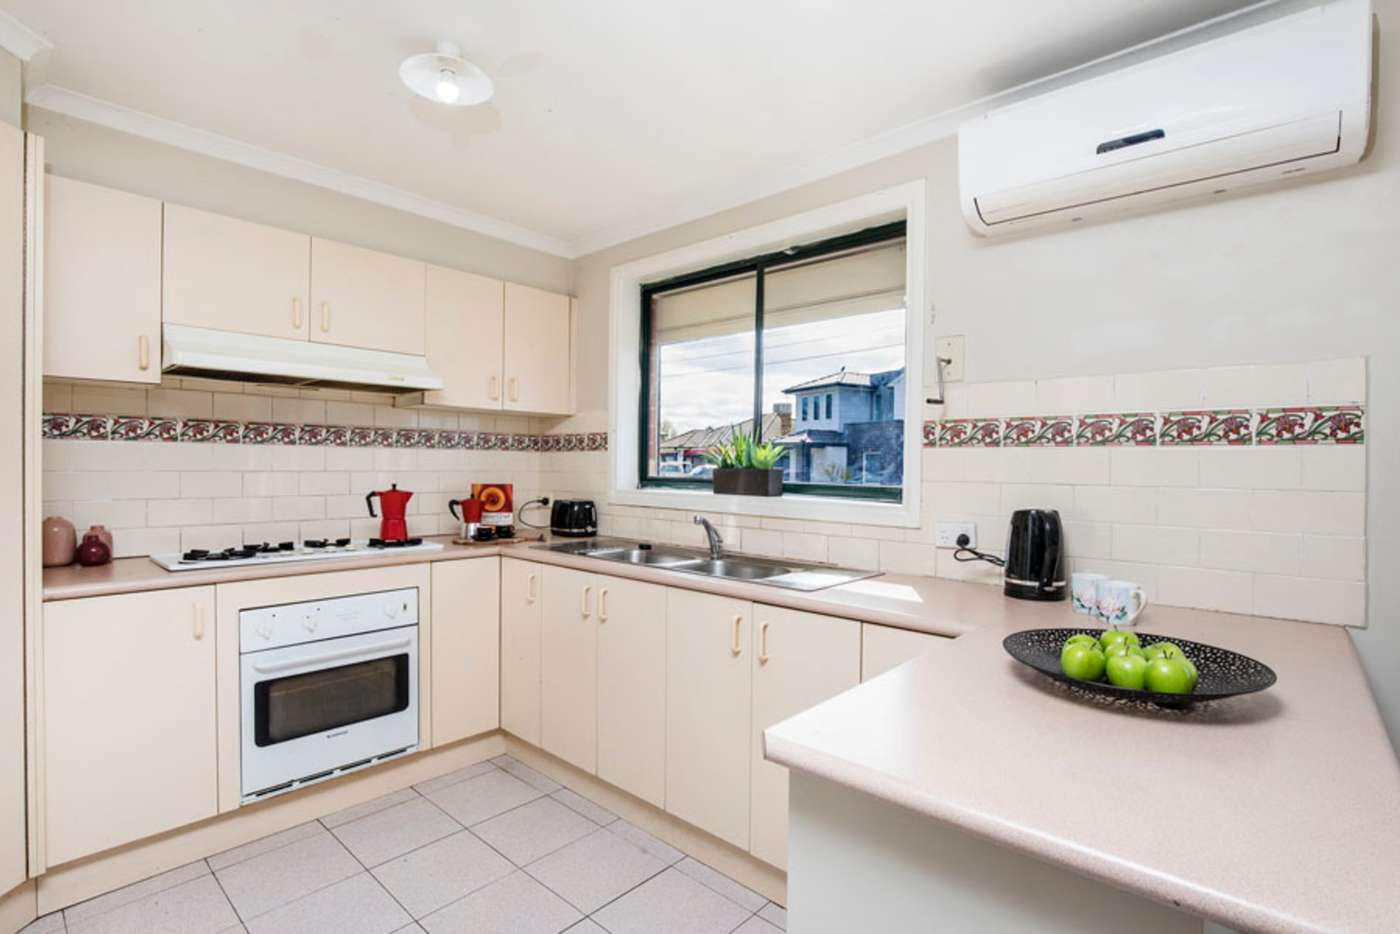 Fifth view of Homely unit listing, 1/11 Hartington Street, Glenroy VIC 3046